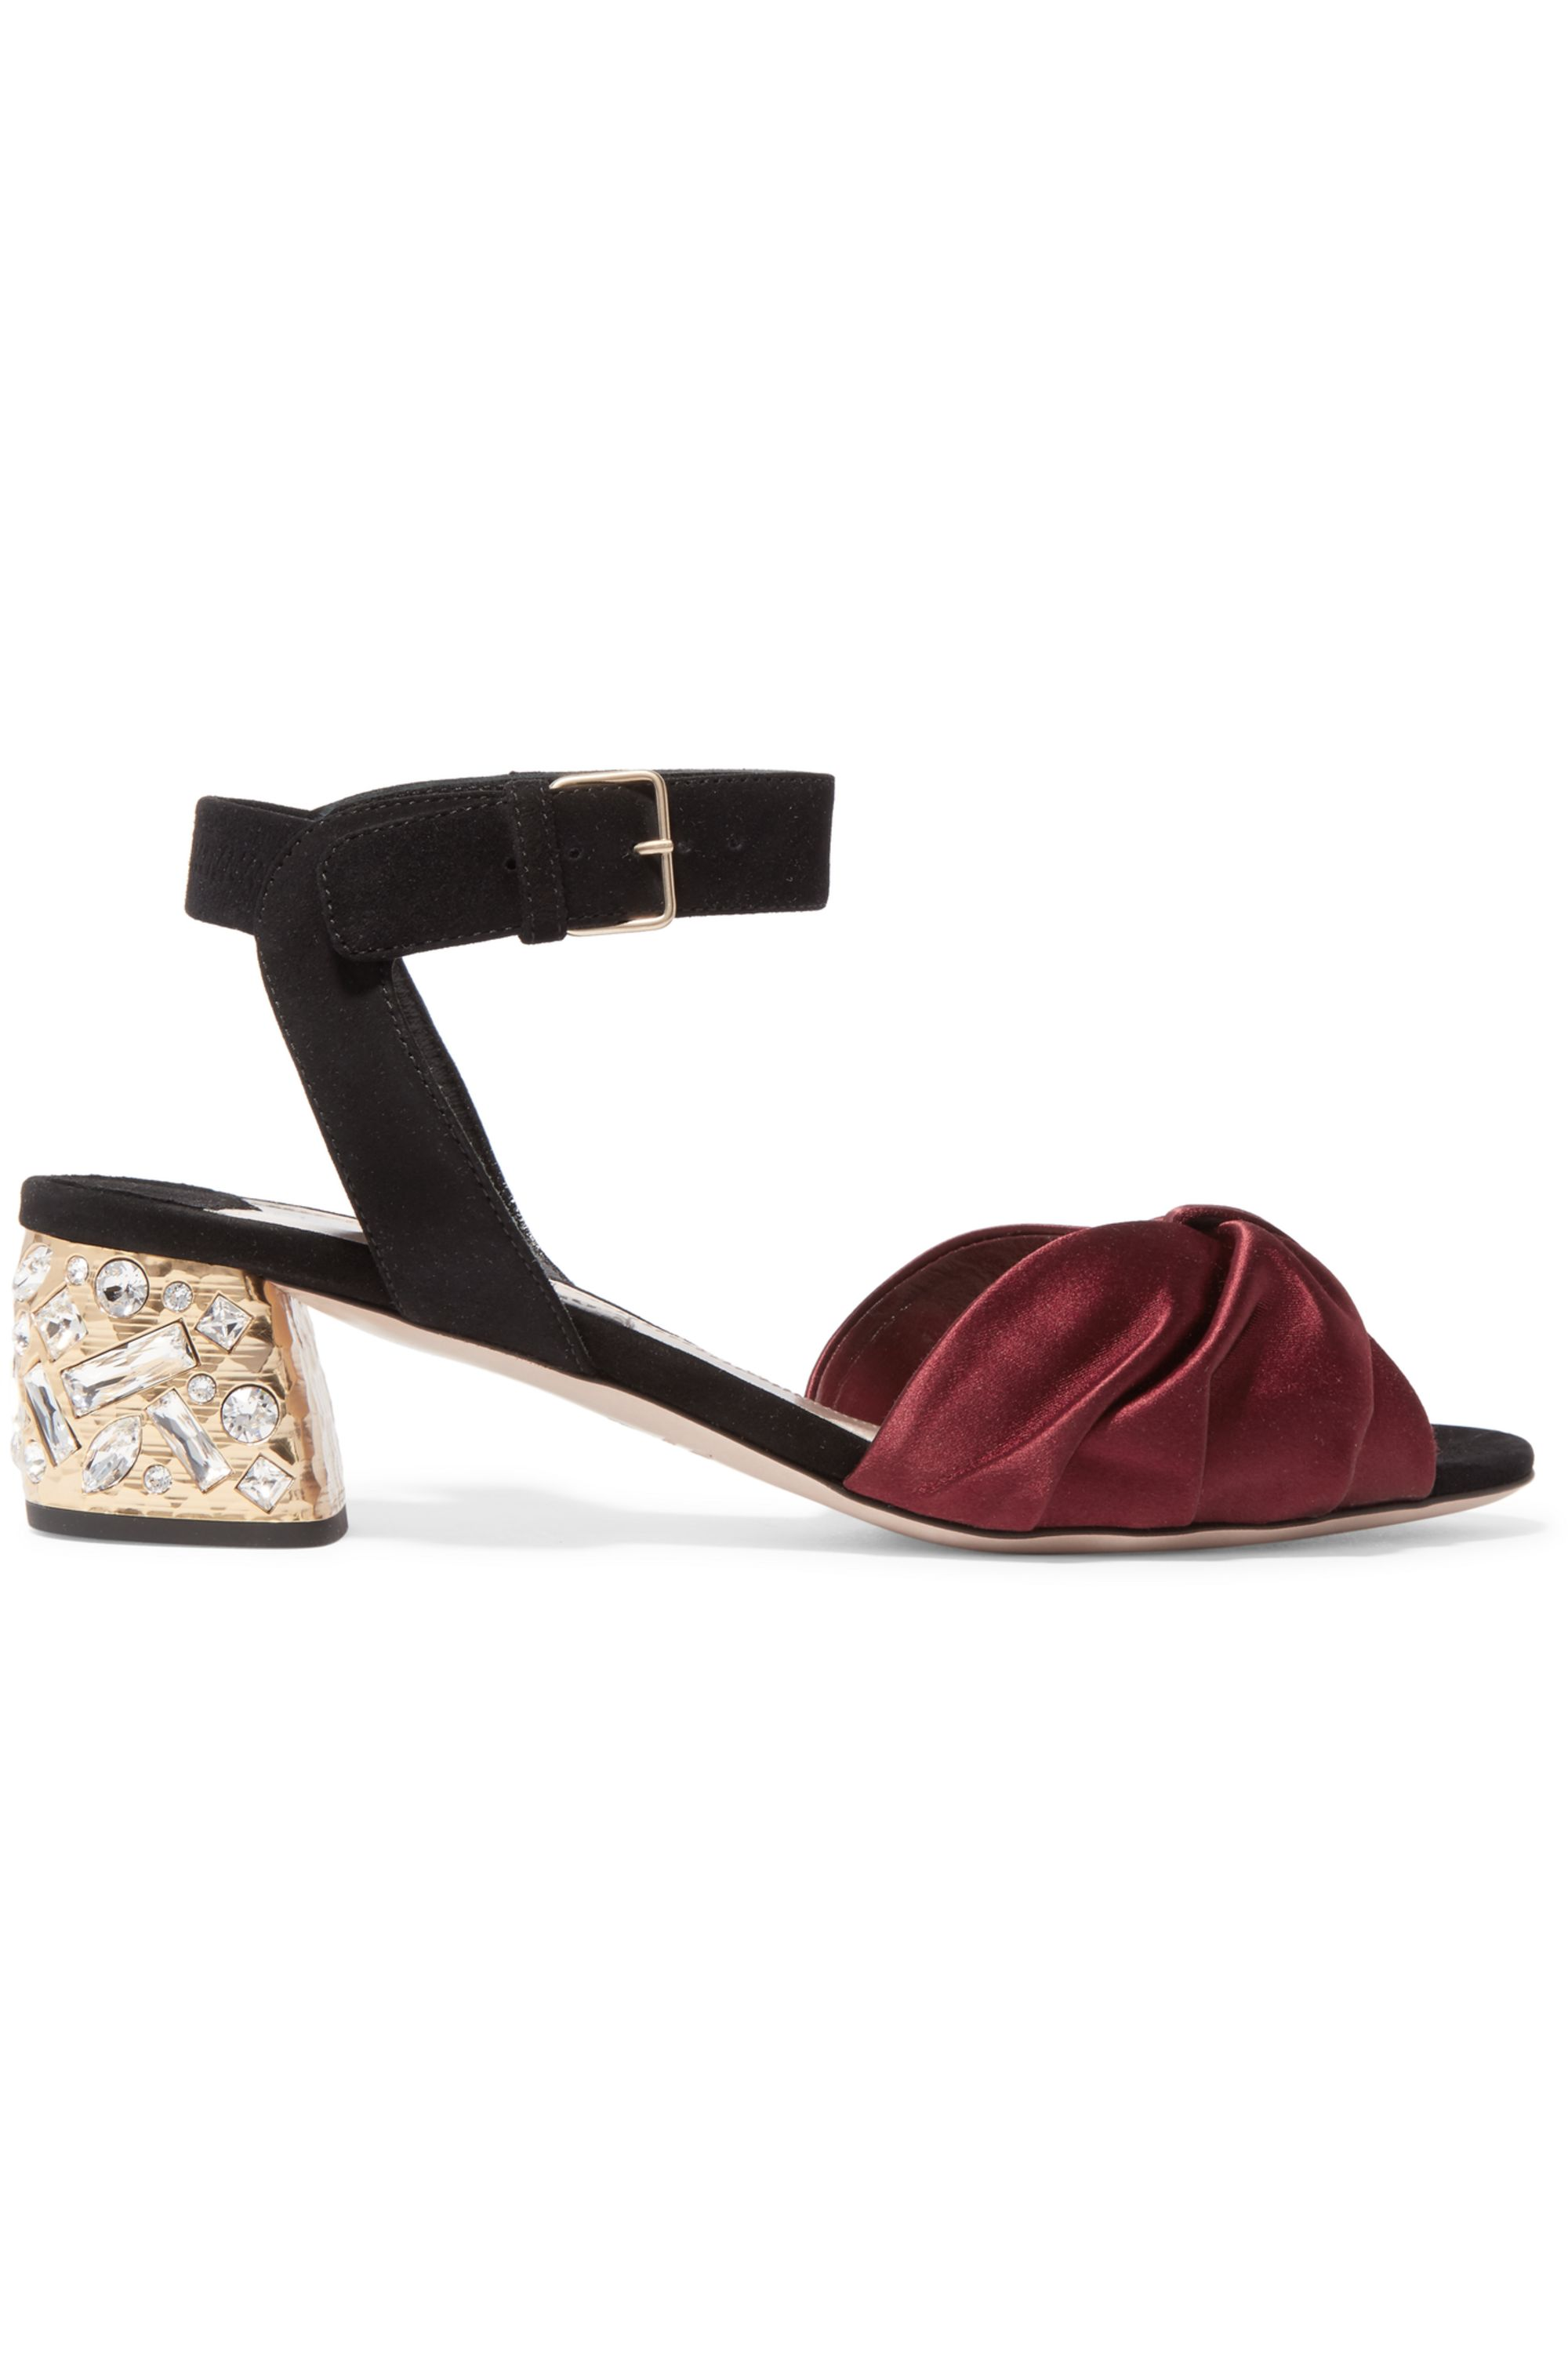 Miu Miu Crystal-embellished knotted satin and suede sandals